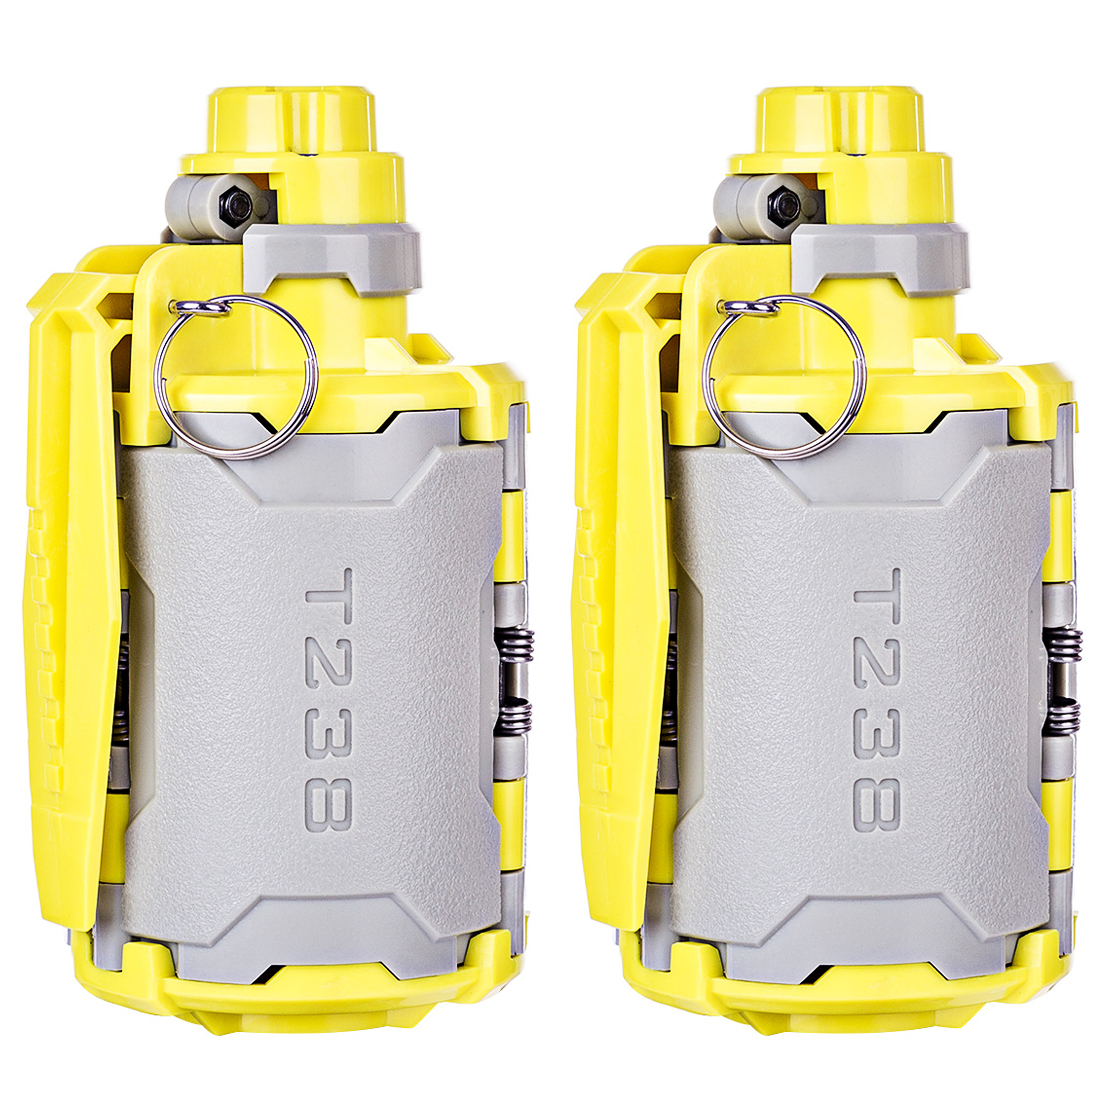 2 Pcs T238 V2 Large Ungrad Capacity Bomb Tactical Toy With Time-delayed Function For Nerf Gel Ball BBs Airsoft Wargame